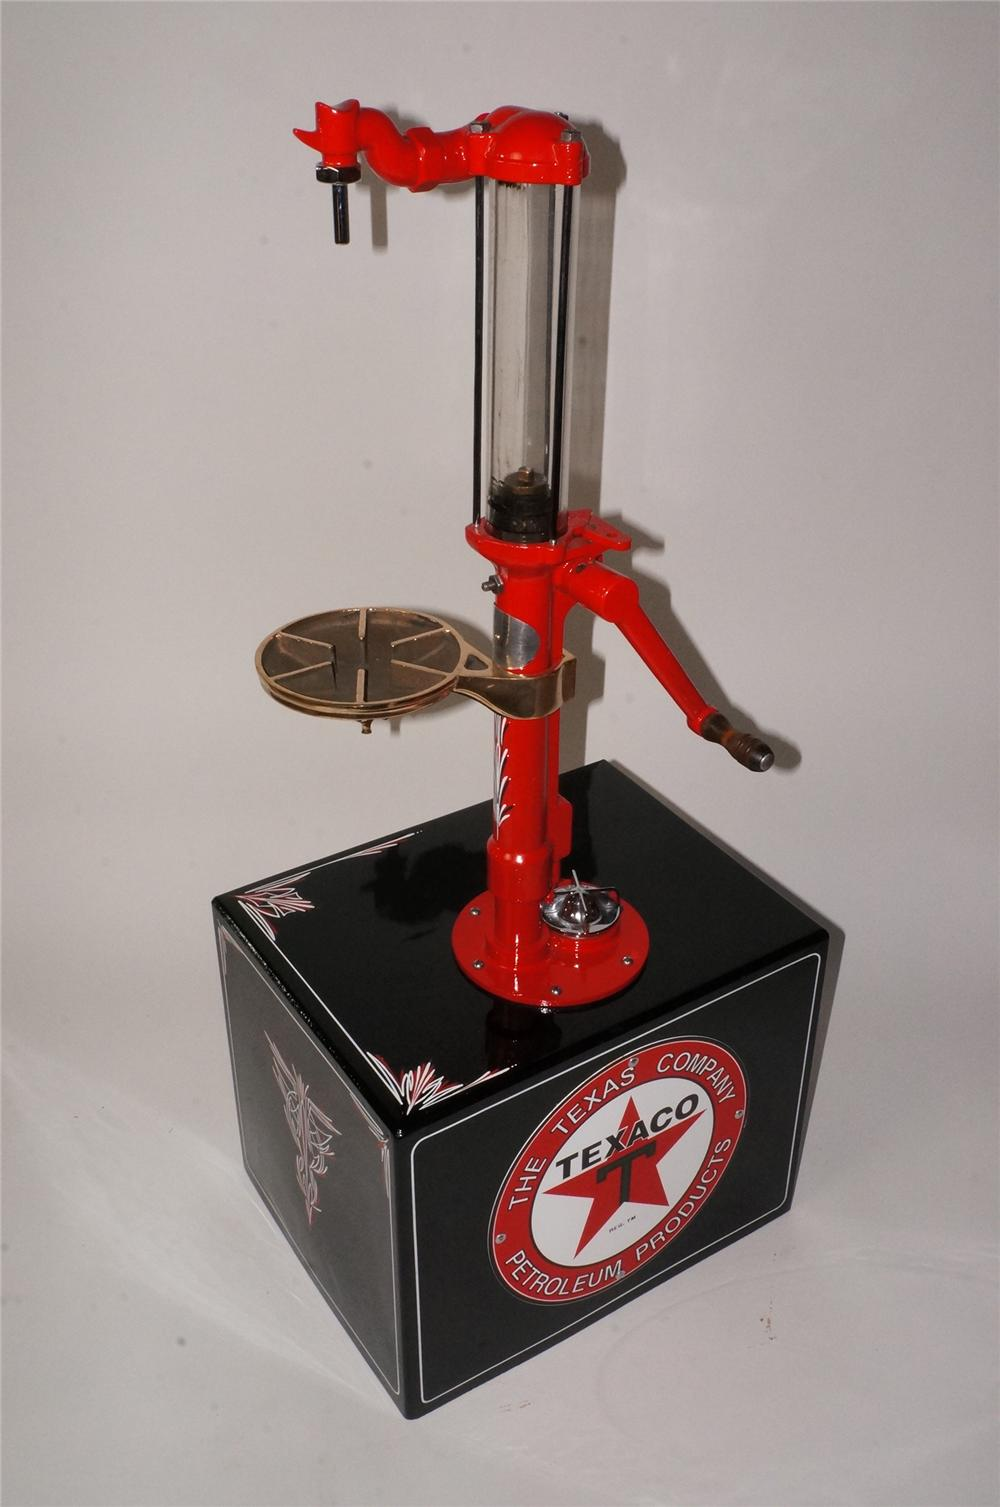 Beautiful 1920' restored Texaco Oil Bowser counter-top oil/kerosene hand pump filling station dispenser with glass cylinder. - Front 3/4 - 162127